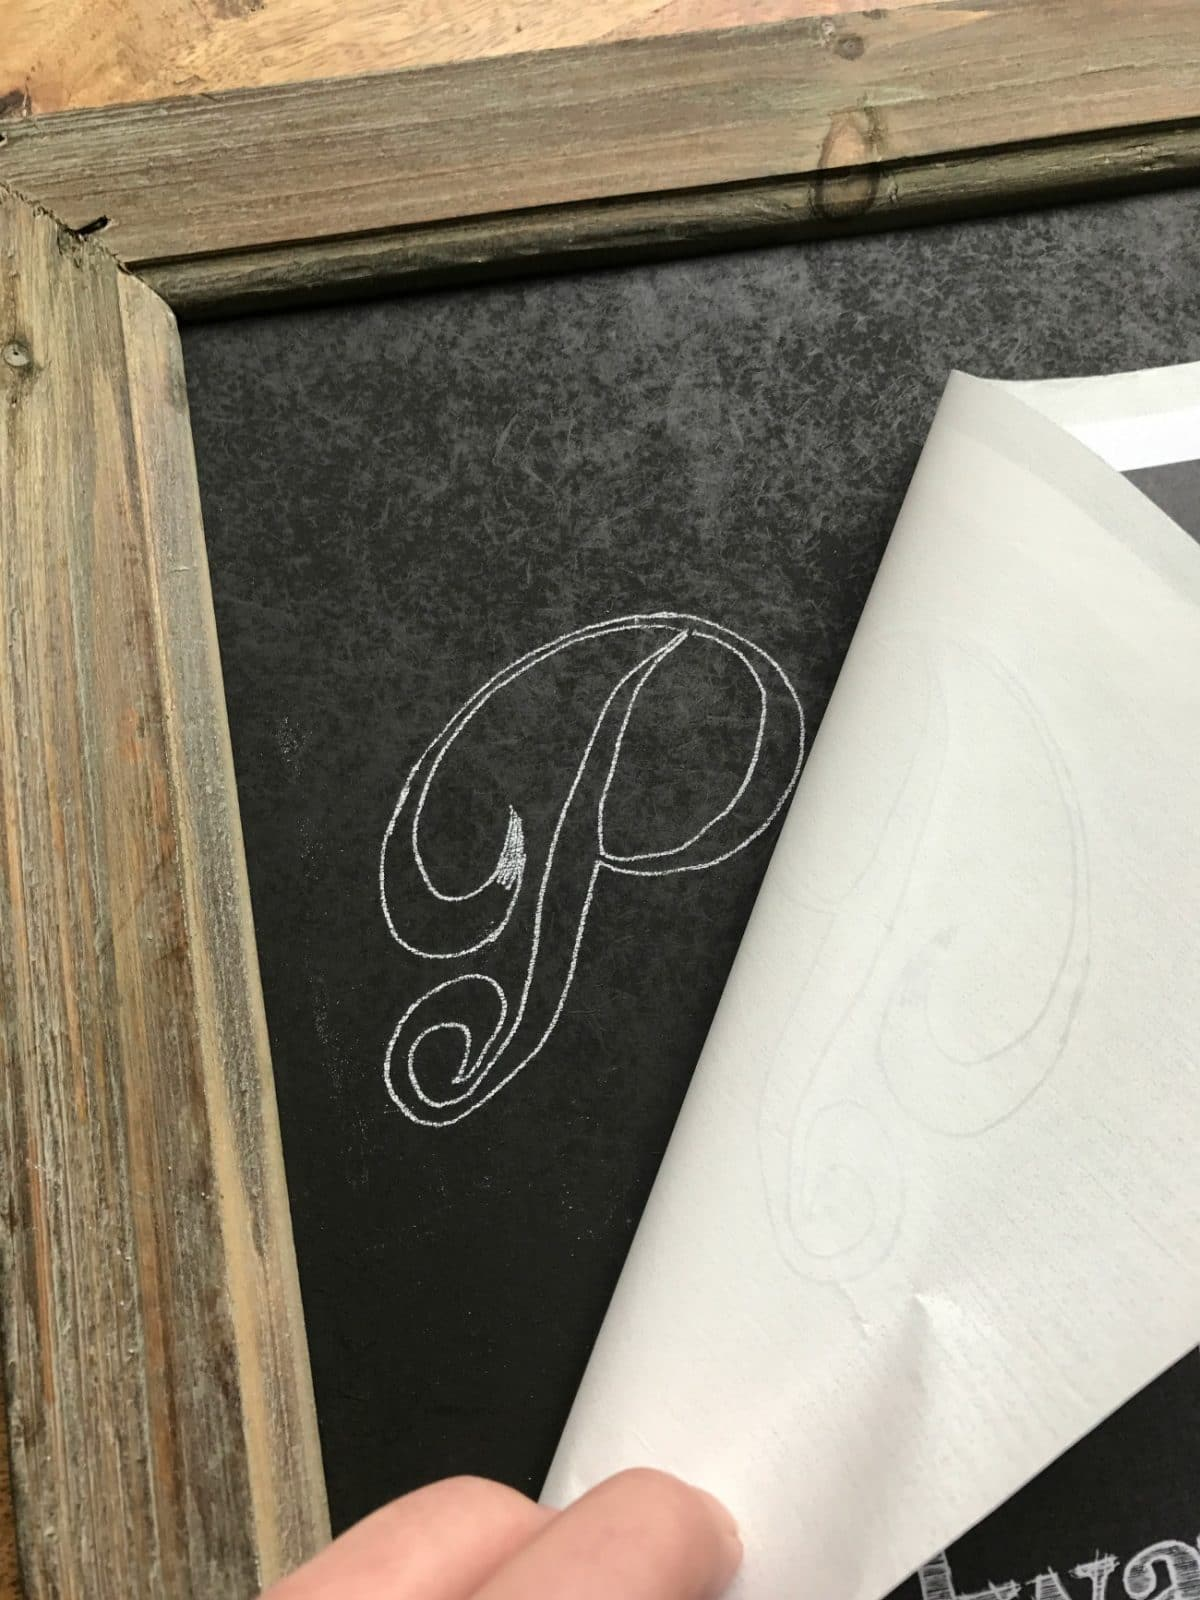 image regarding Printable Chalkboard Letters identify The Simple Trick towards Do it yourself Chalkboard Artwork and Lettering Excellent